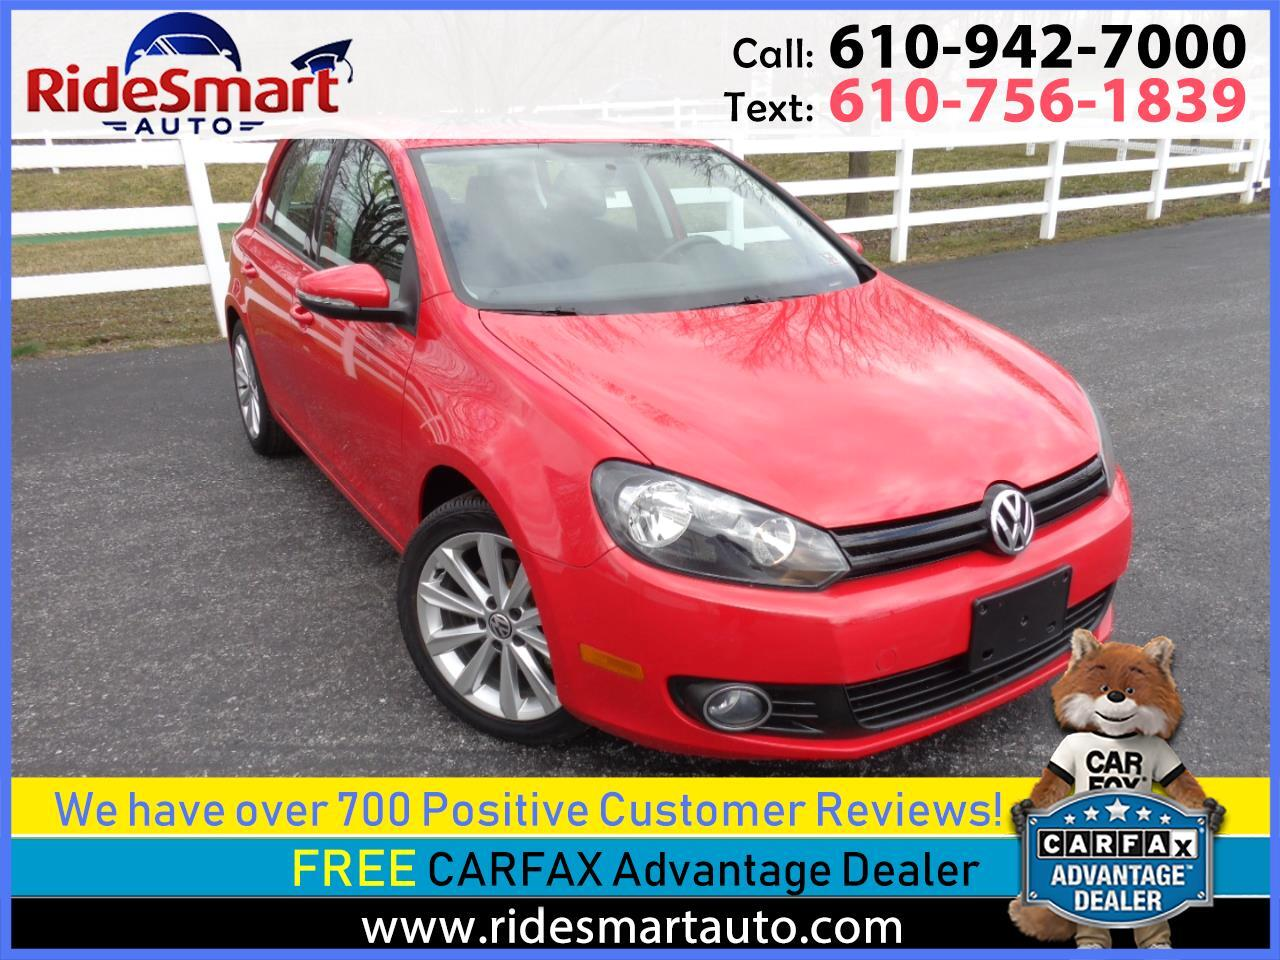 2014 Volkswagen Golf 2.0L TDI w/Tech Package 4 Door